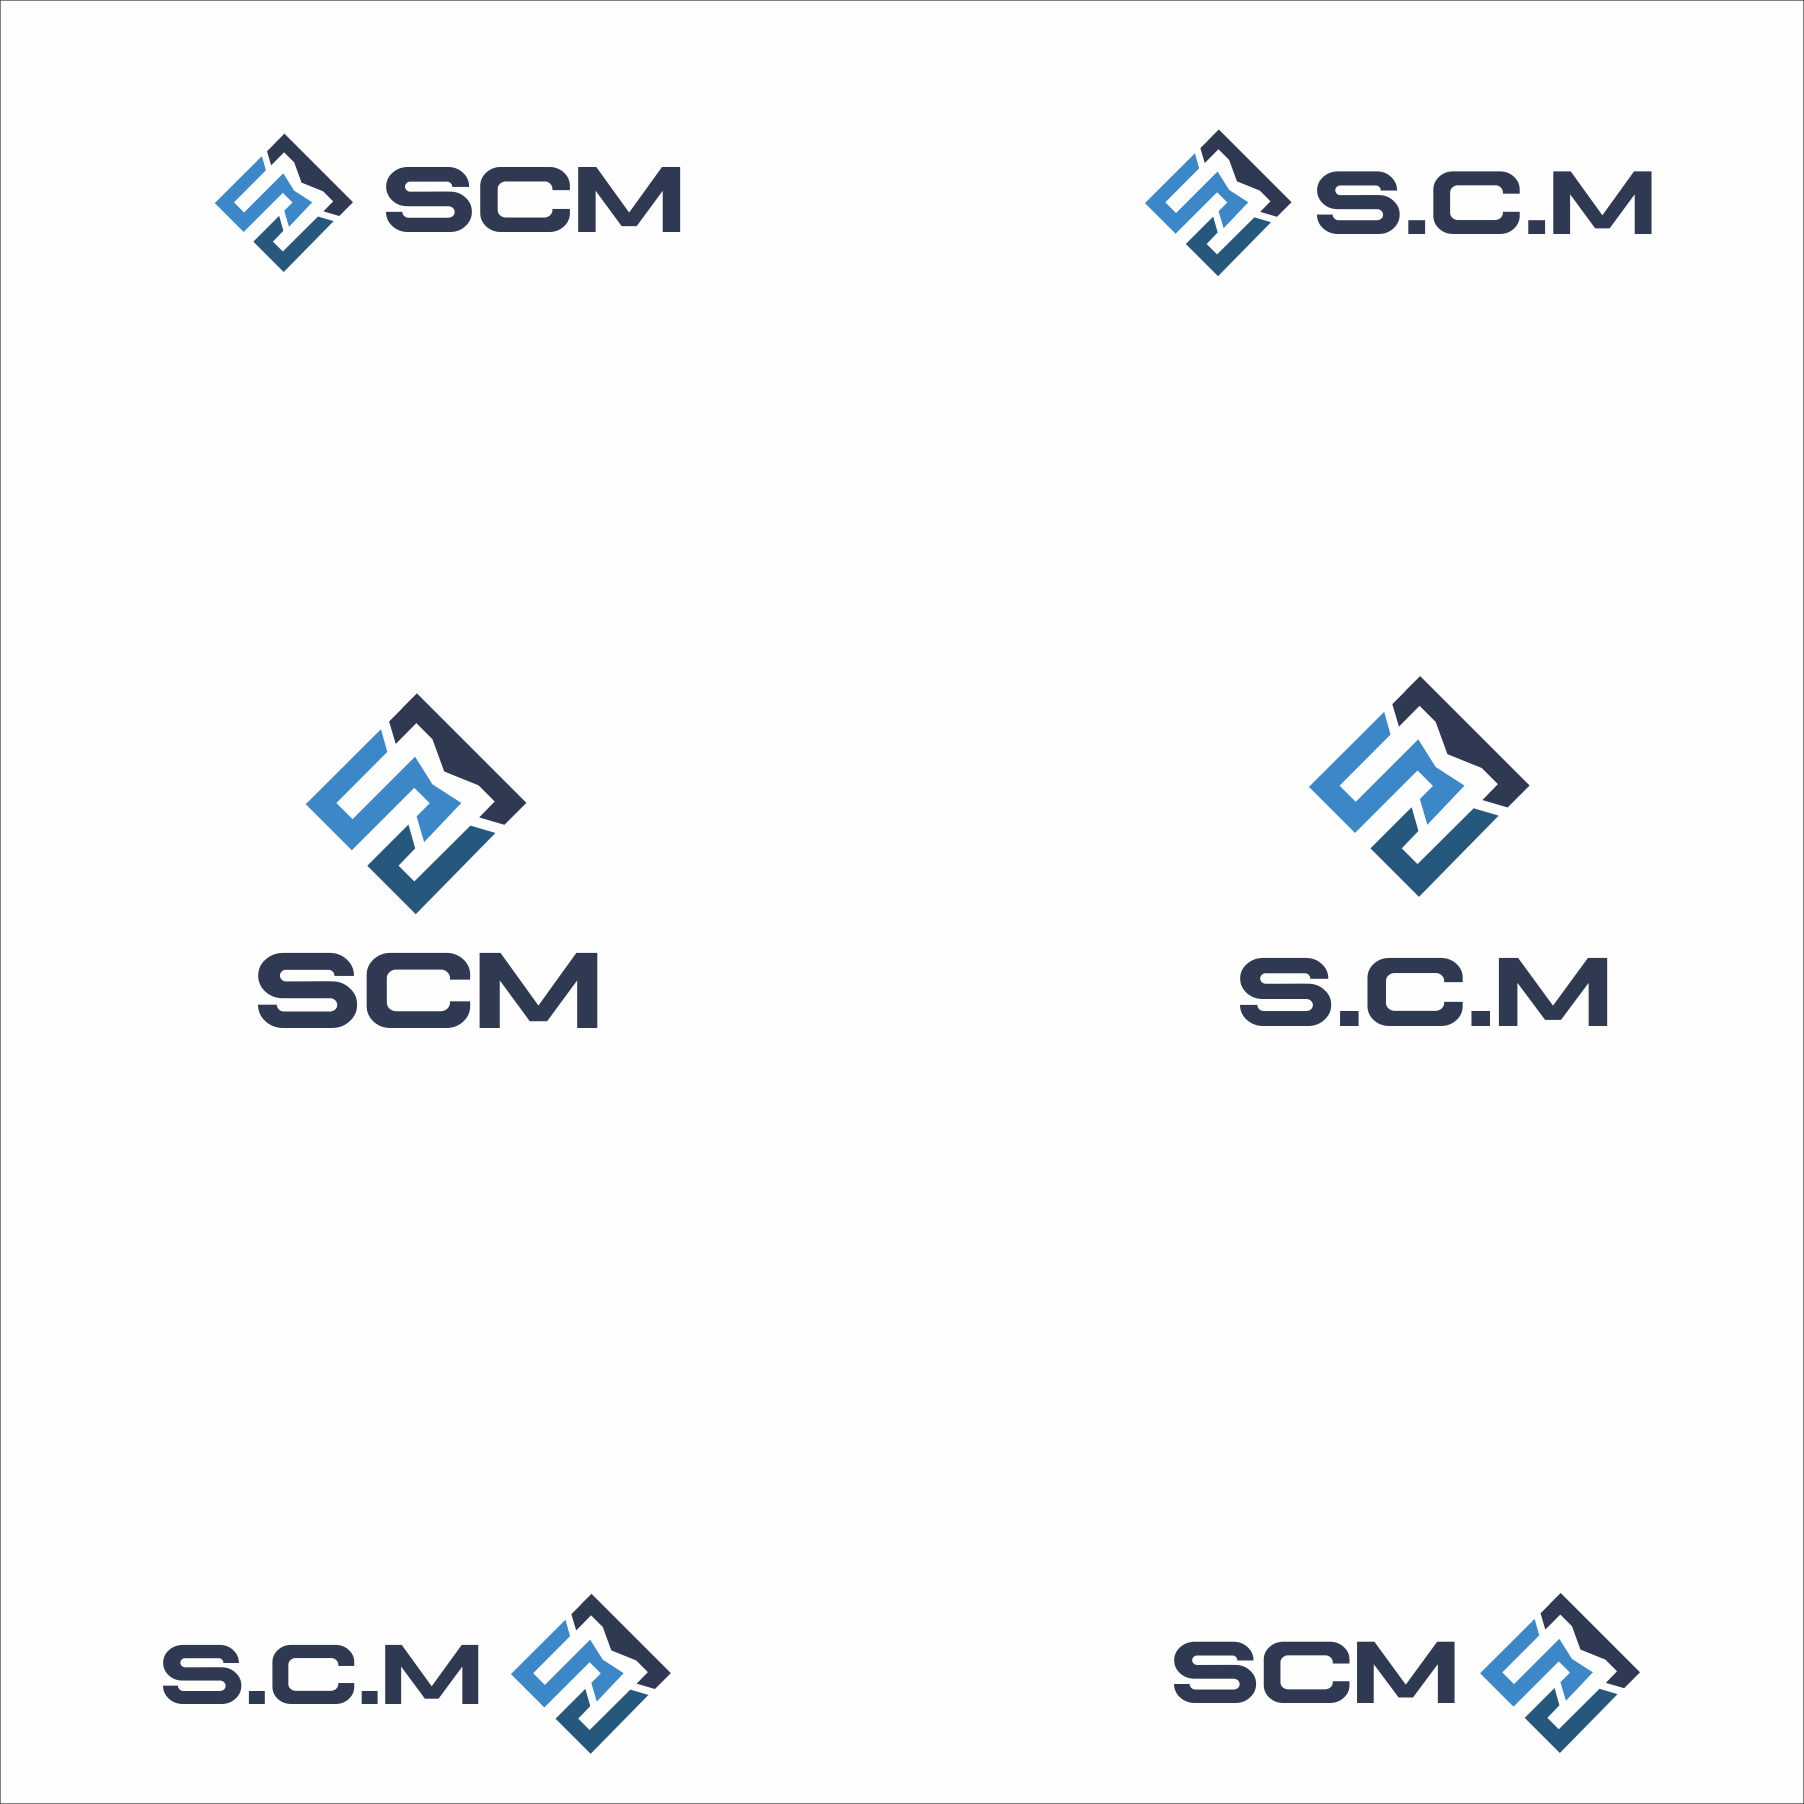 Design a logo for S.C.M - a precision micromachining specialist